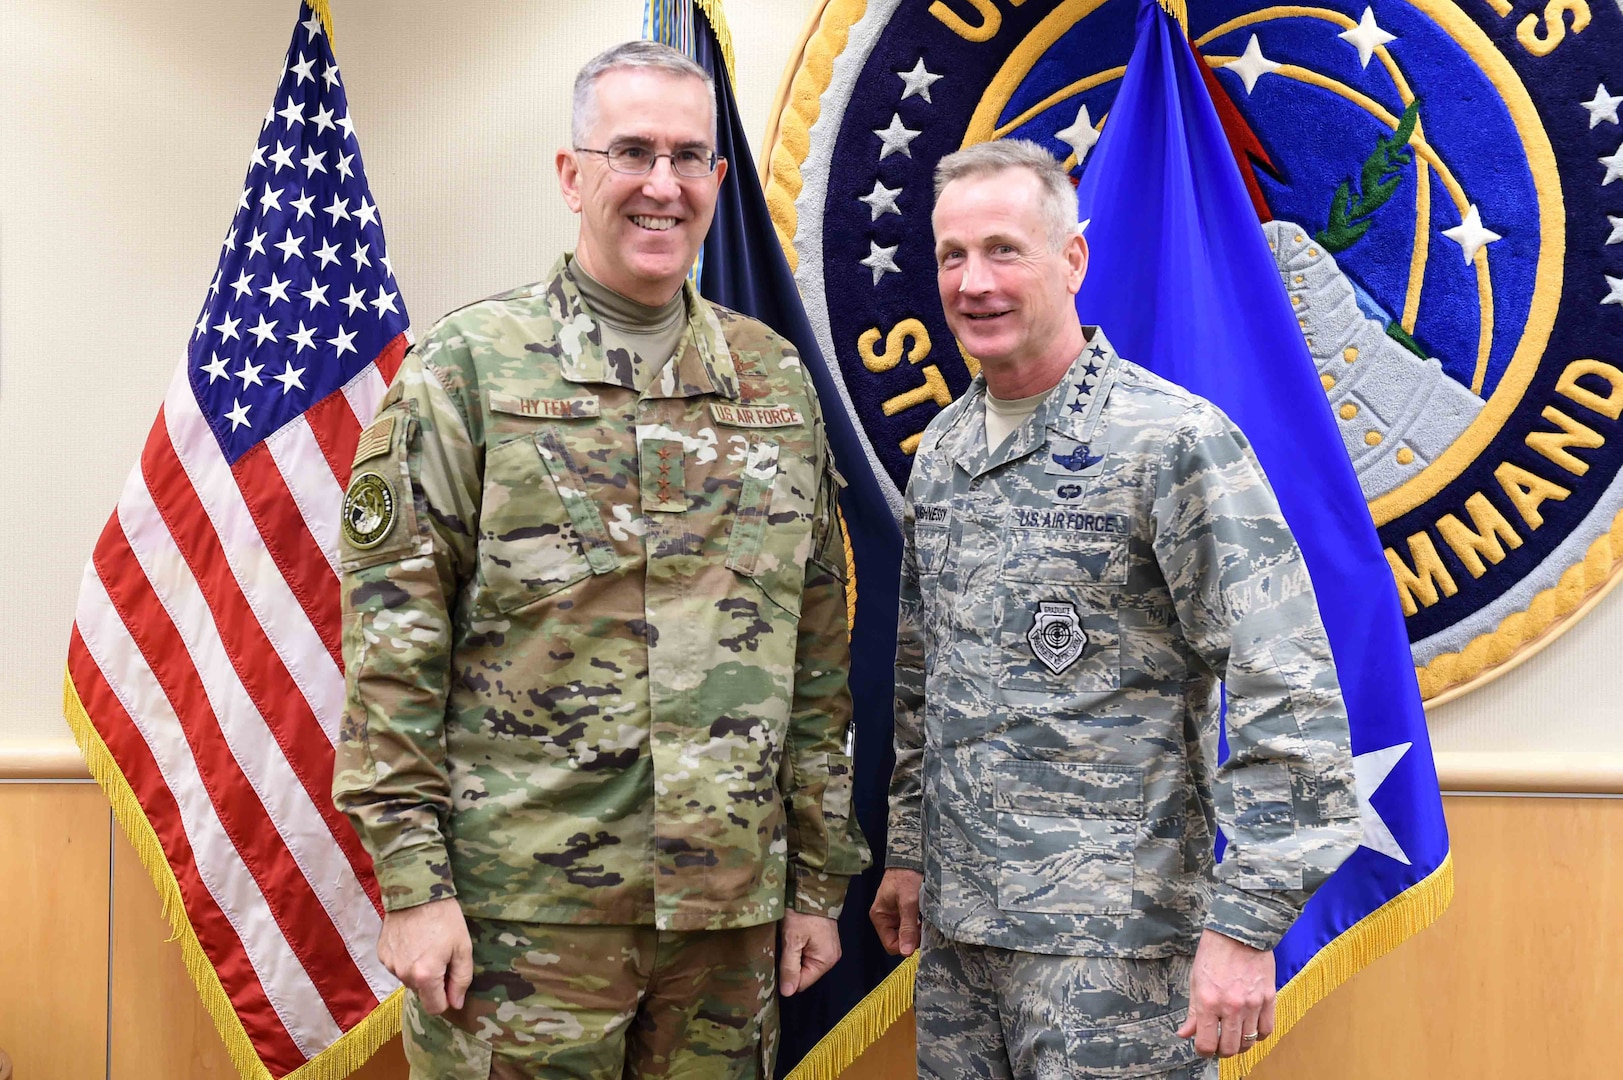 U.S. Air Force Gen. John Hyten, commander of U.S. Strategic Command (USSTRATCOM), meets U.S. Air Force Gen. Terrence O'Shaughnessy, commander of North American Aerospace Defense Command (NORAD) and U.S. Northern Command (USNORTHCOM), at USSTRATCOM headquarters, Offutt Air Force Base, Neb., Jan. 30, 2019. During his visit, O'Shaughnessy toured the command's global operations center, battle deck and new command and control facility. He also participated in discussions with Hyten and other senior leaders on the continuing collaboration between USSTRATCOM, NORAD and USNORTHCOM. USSTRATCOM has global responsibilities assigned through the Unified Command Plan that include strategic deterrence, nuclear operations, space operations, joint electromagnetic spectrum operations, global strike, missile defense, and analysis and targeting.